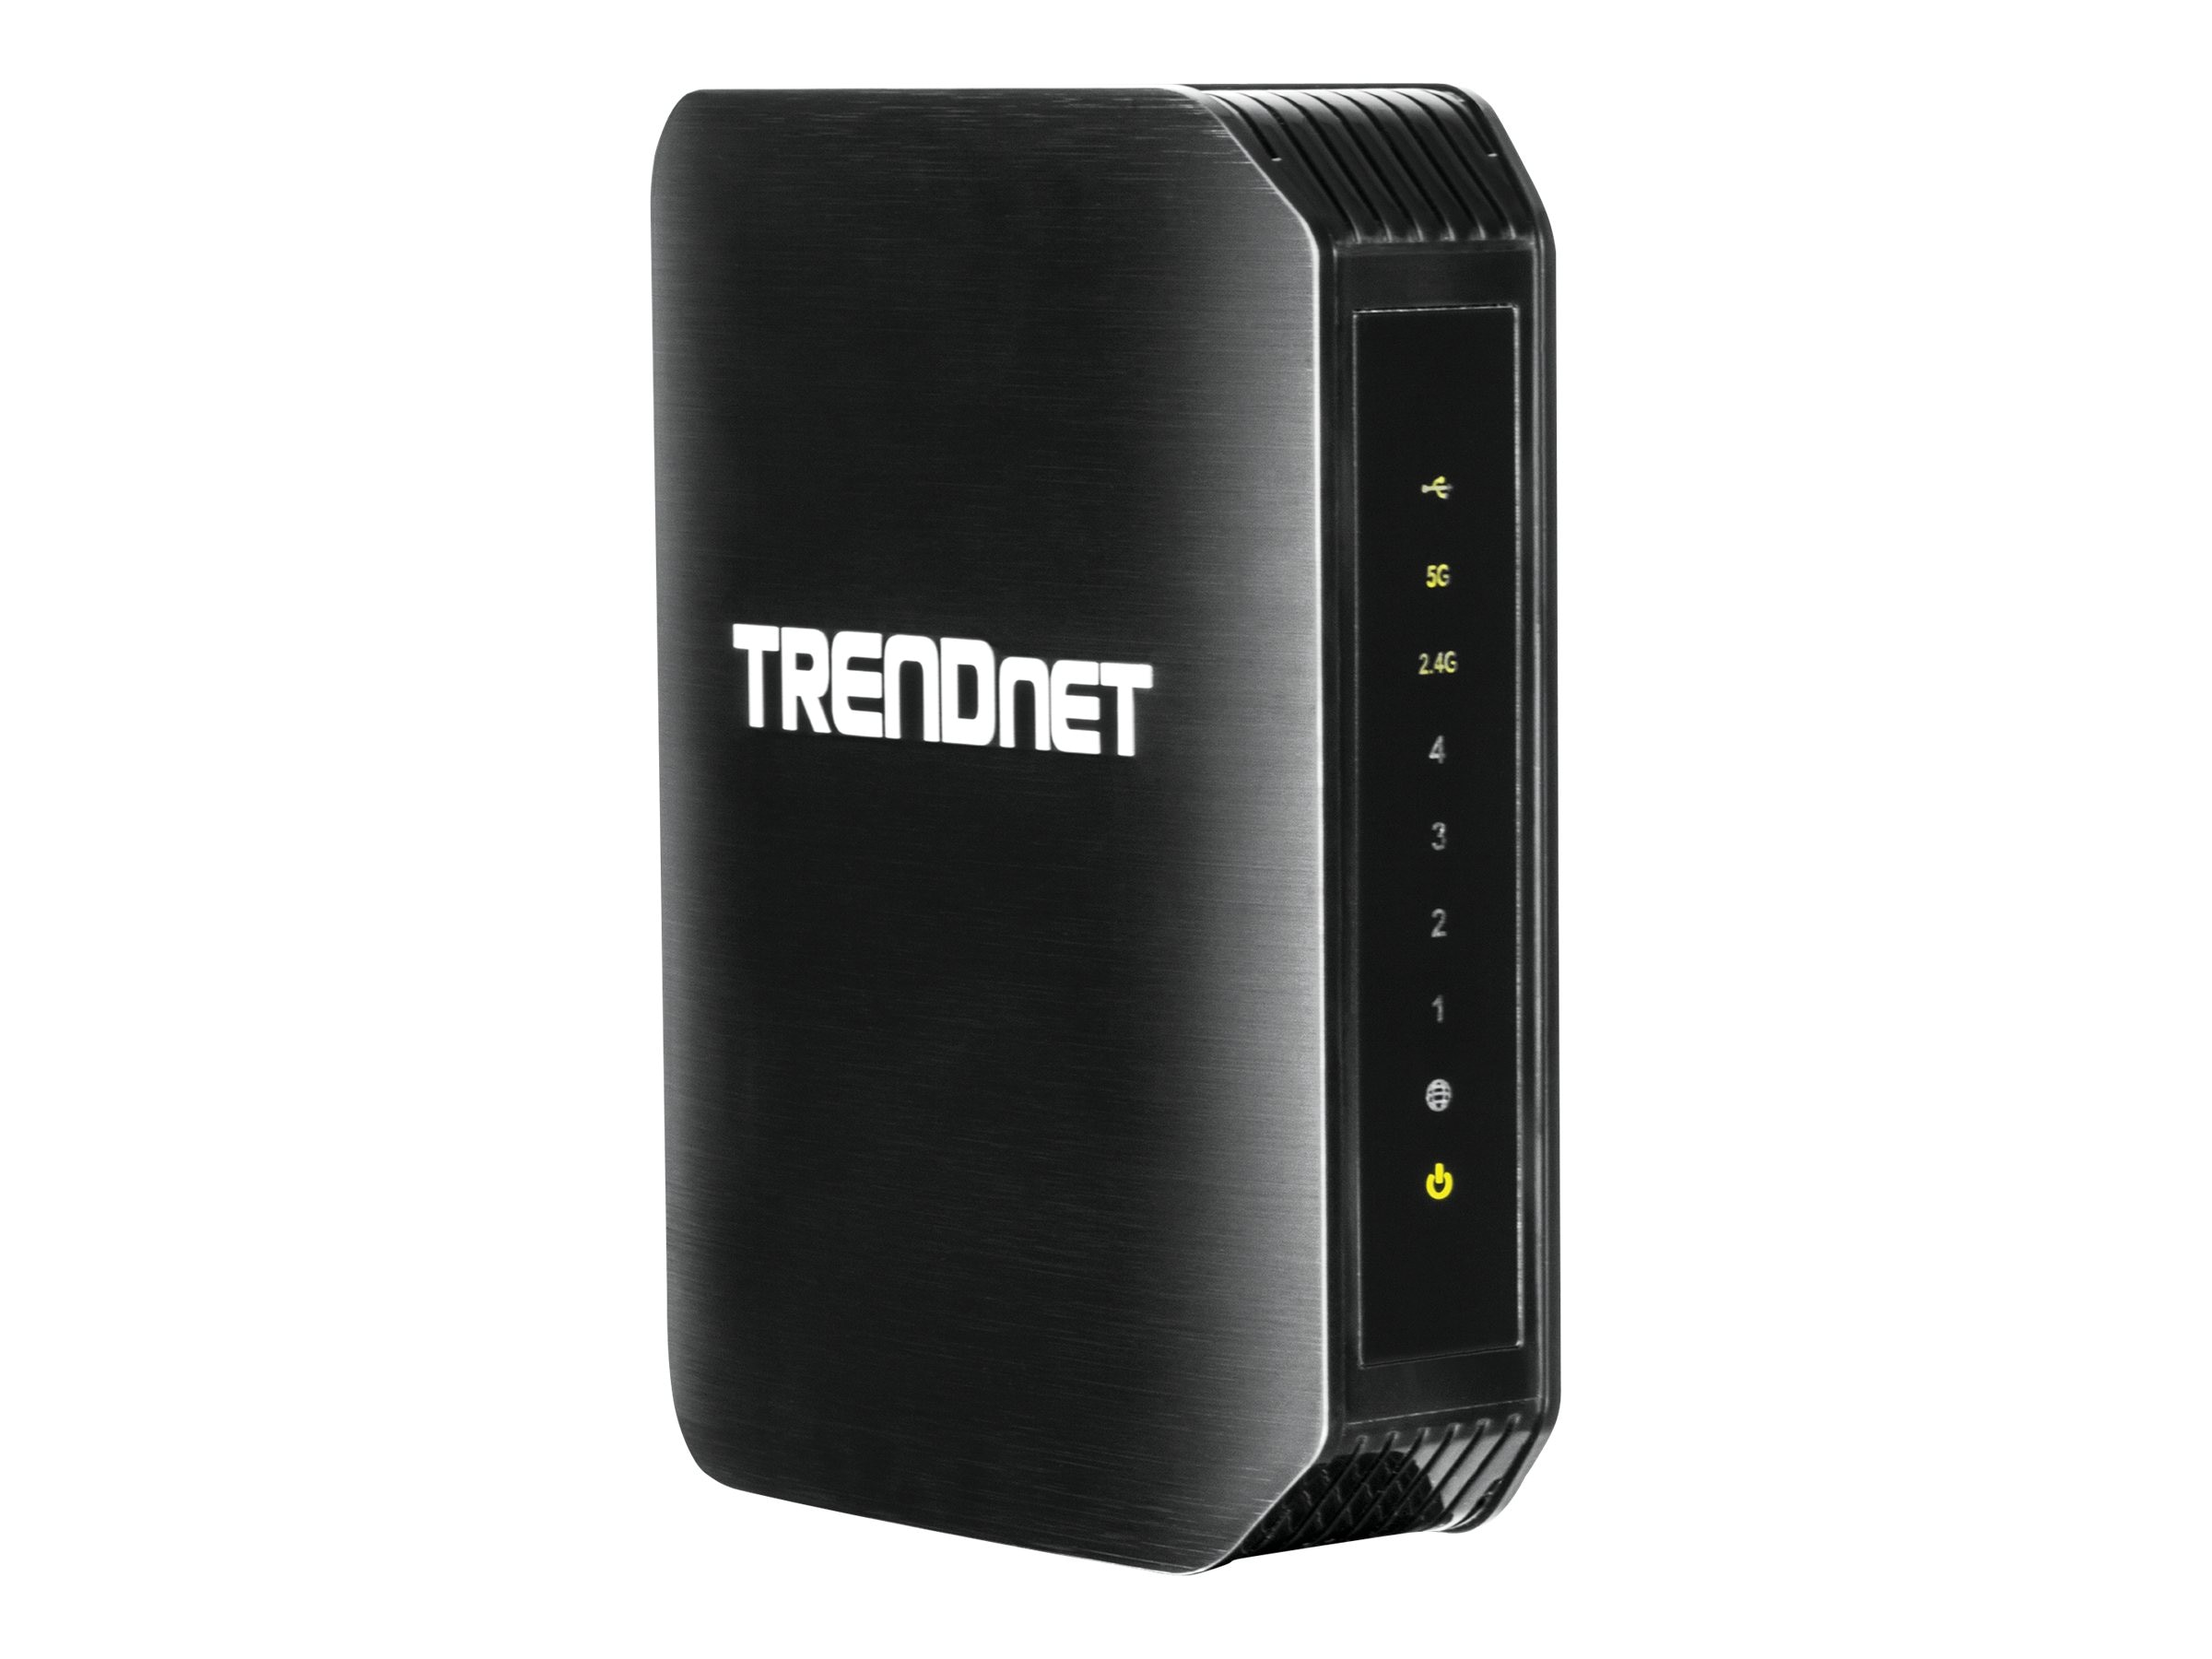 TRENDnet AC1200 Dual Band Wireless Router